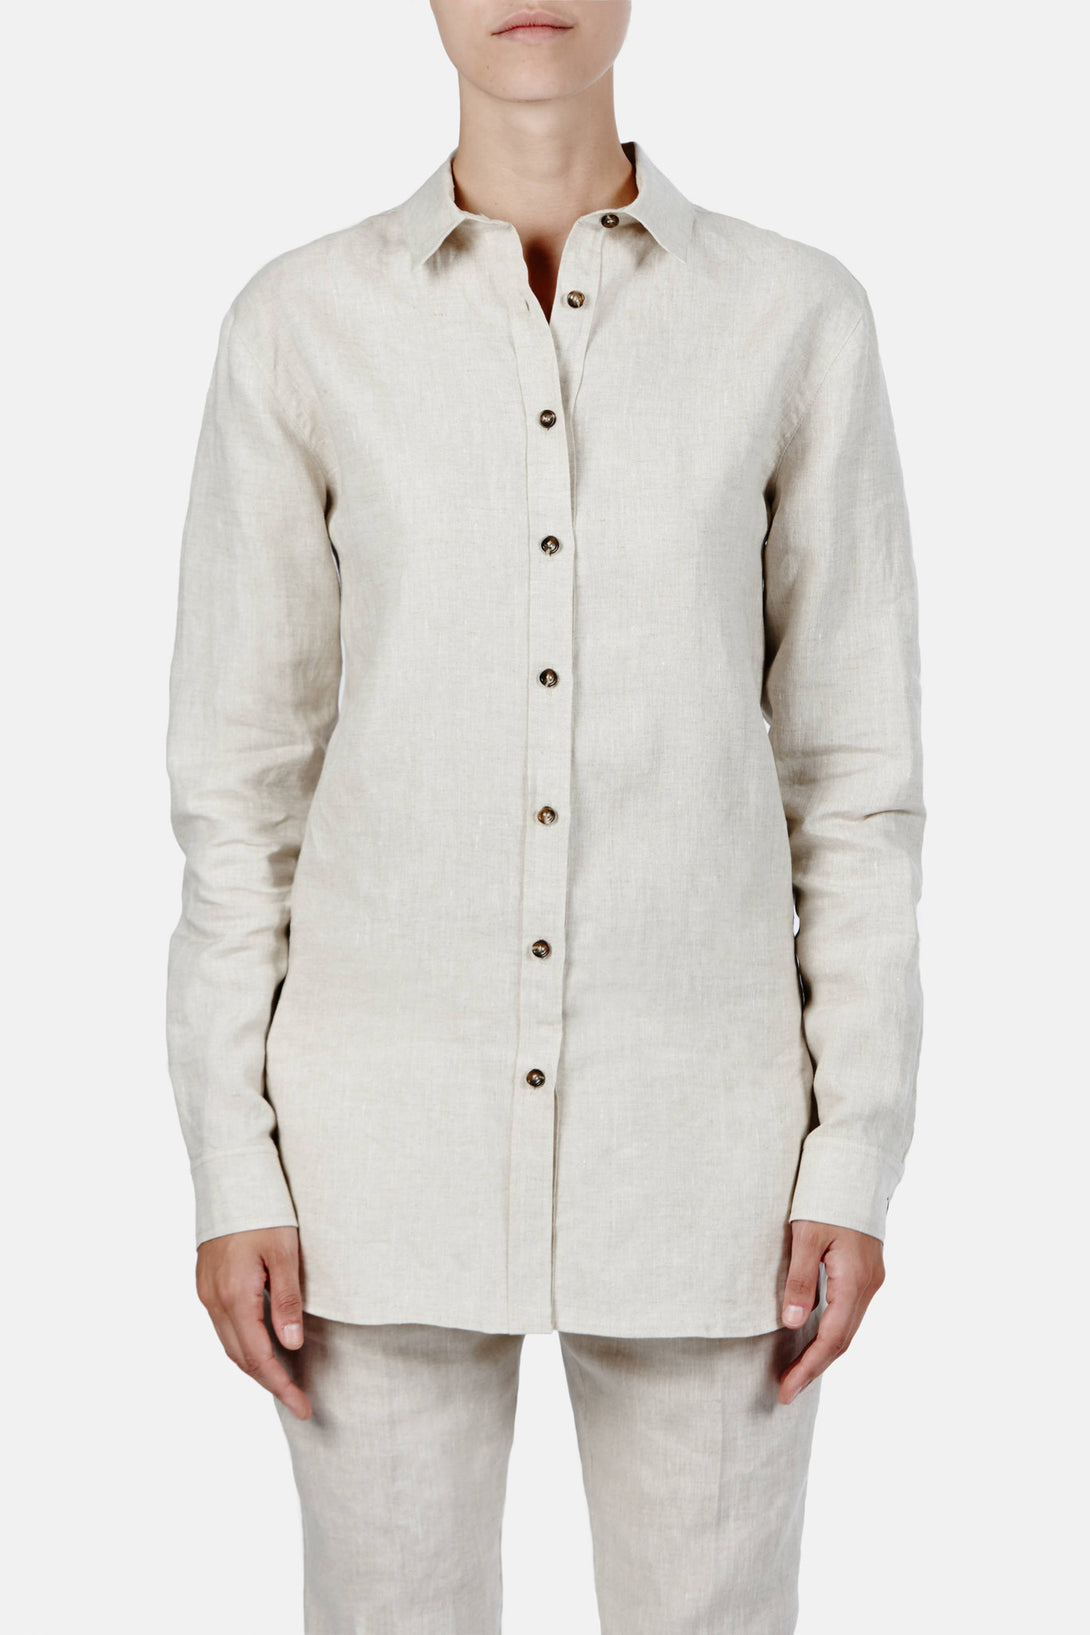 Montauk Shirt - Raw Linen